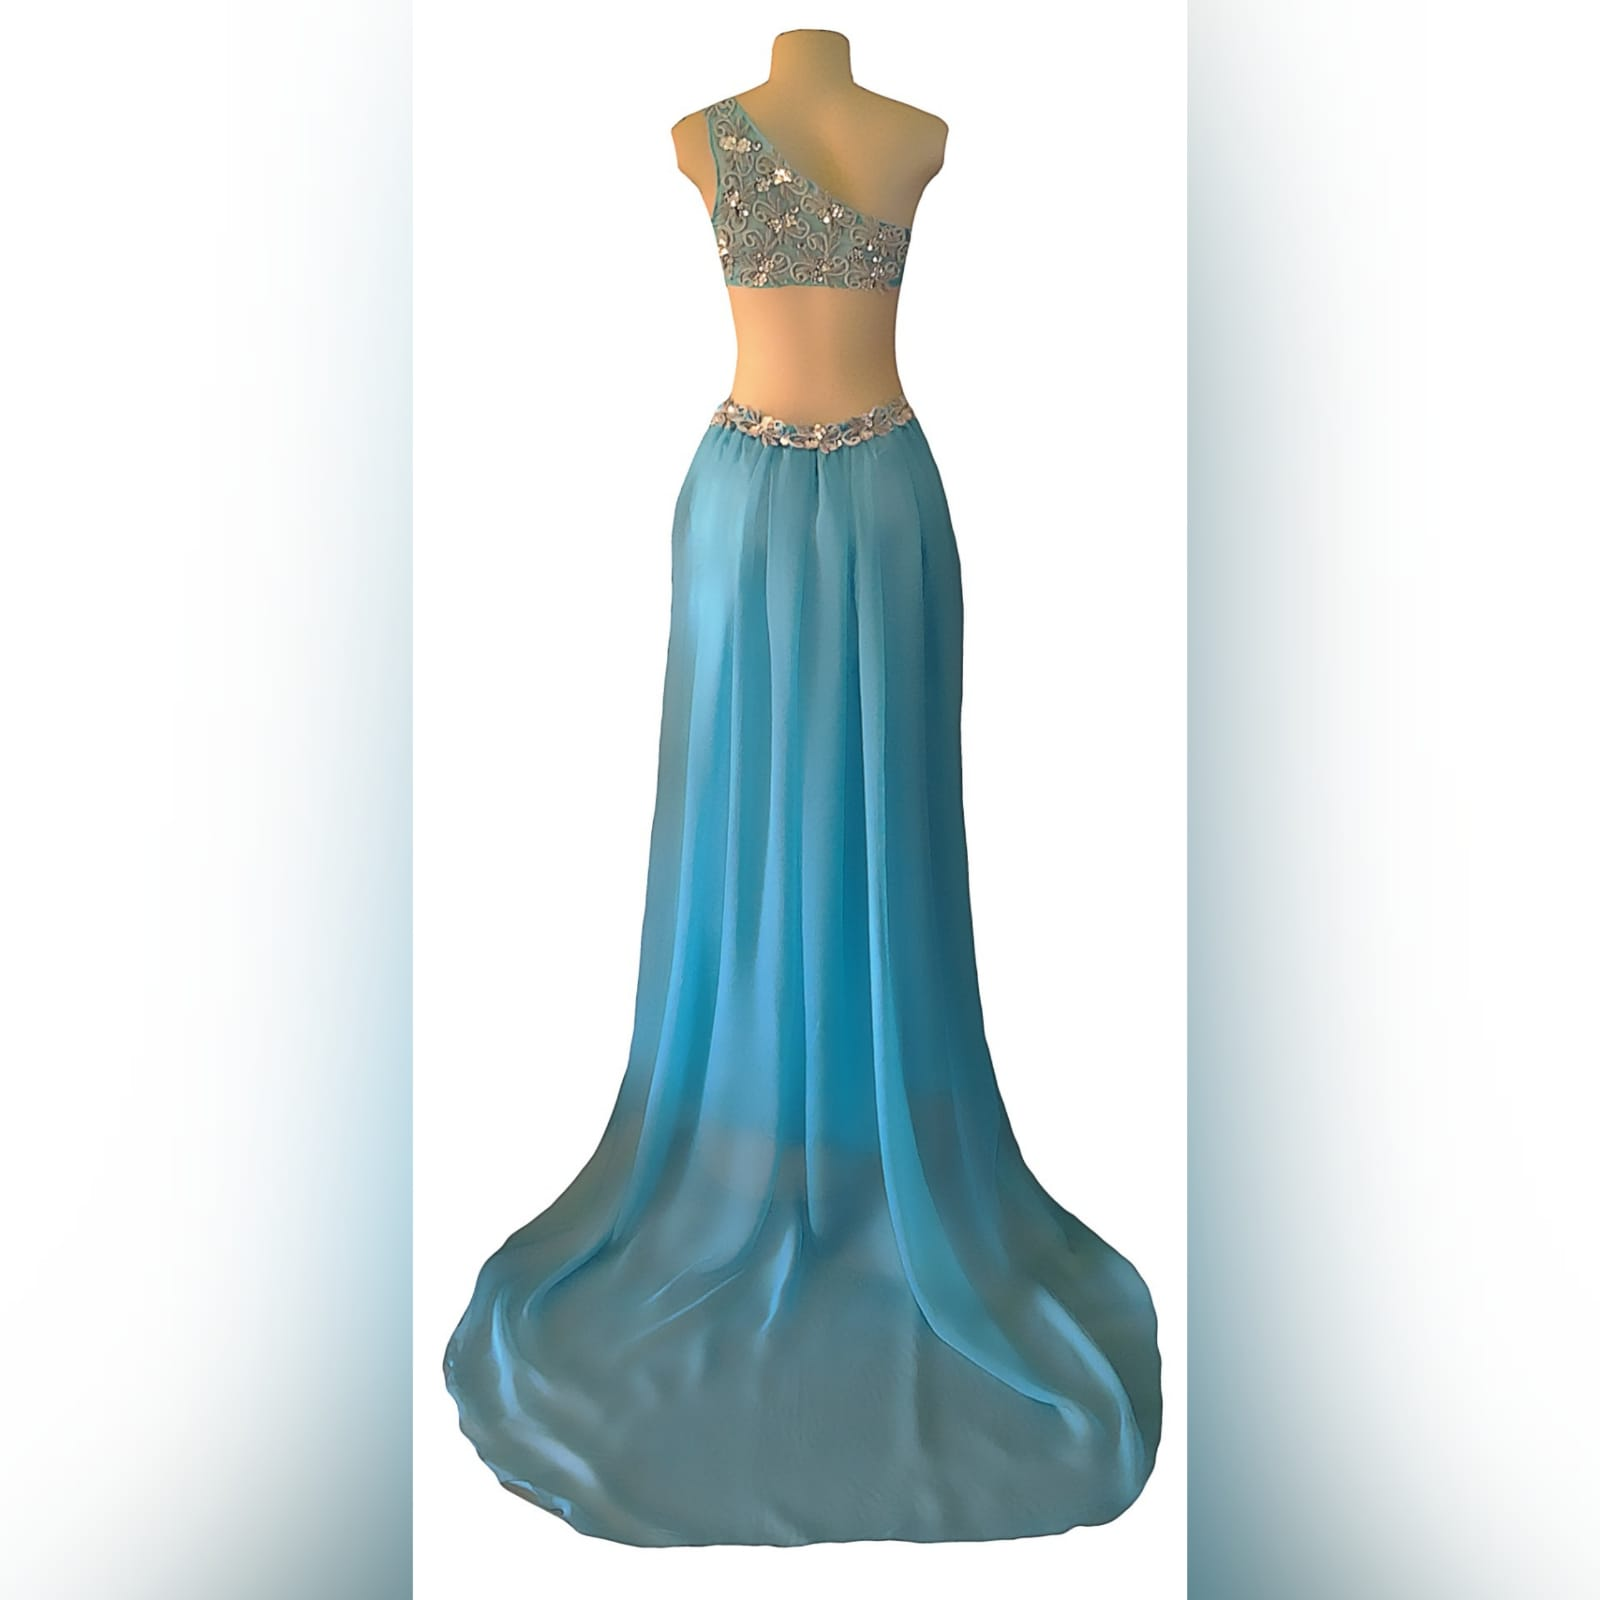 Sky blue chiffon long matric farewell dress 8 sky blue chiffon long matric farewell dress with side tummy opening and low open back. Detailed with silver embellishments. With gathered back chiffon train.